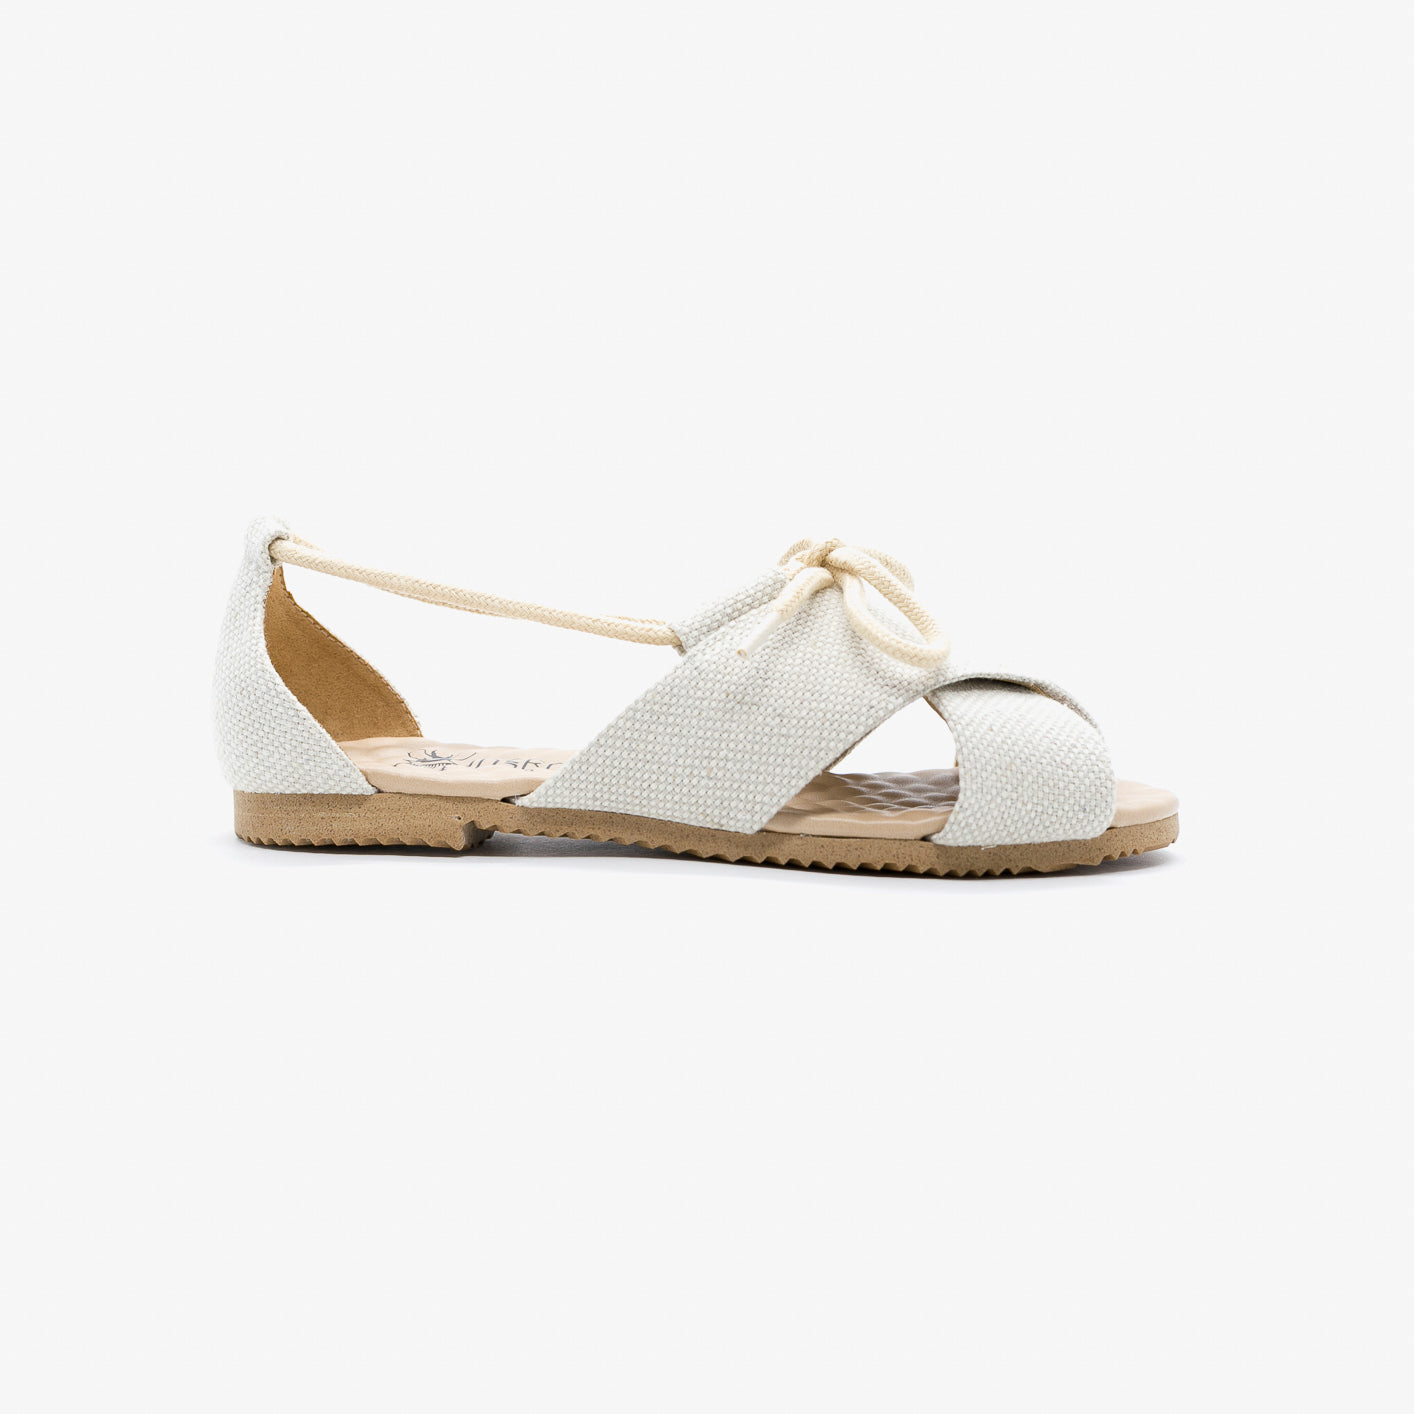 Canvas Sandal - Insecta Shoes